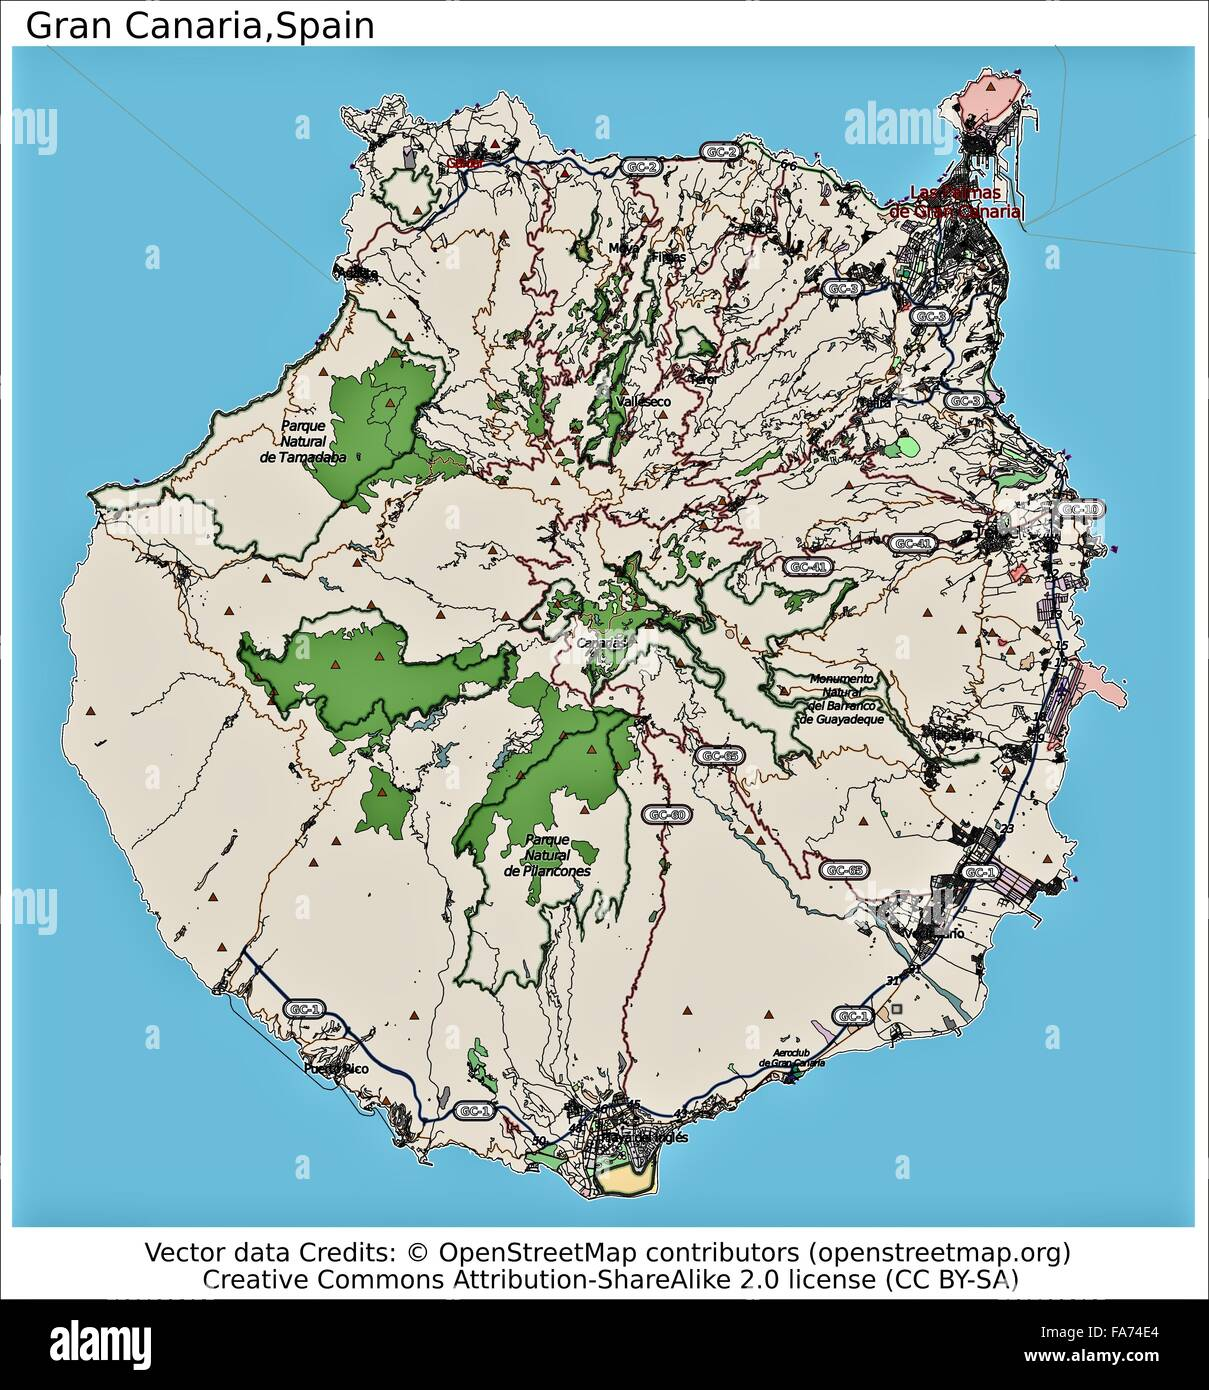 Map Of Spain Gran Canaria.Gran Canaria Spain Location Map Stock Photo 92355596 Alamy